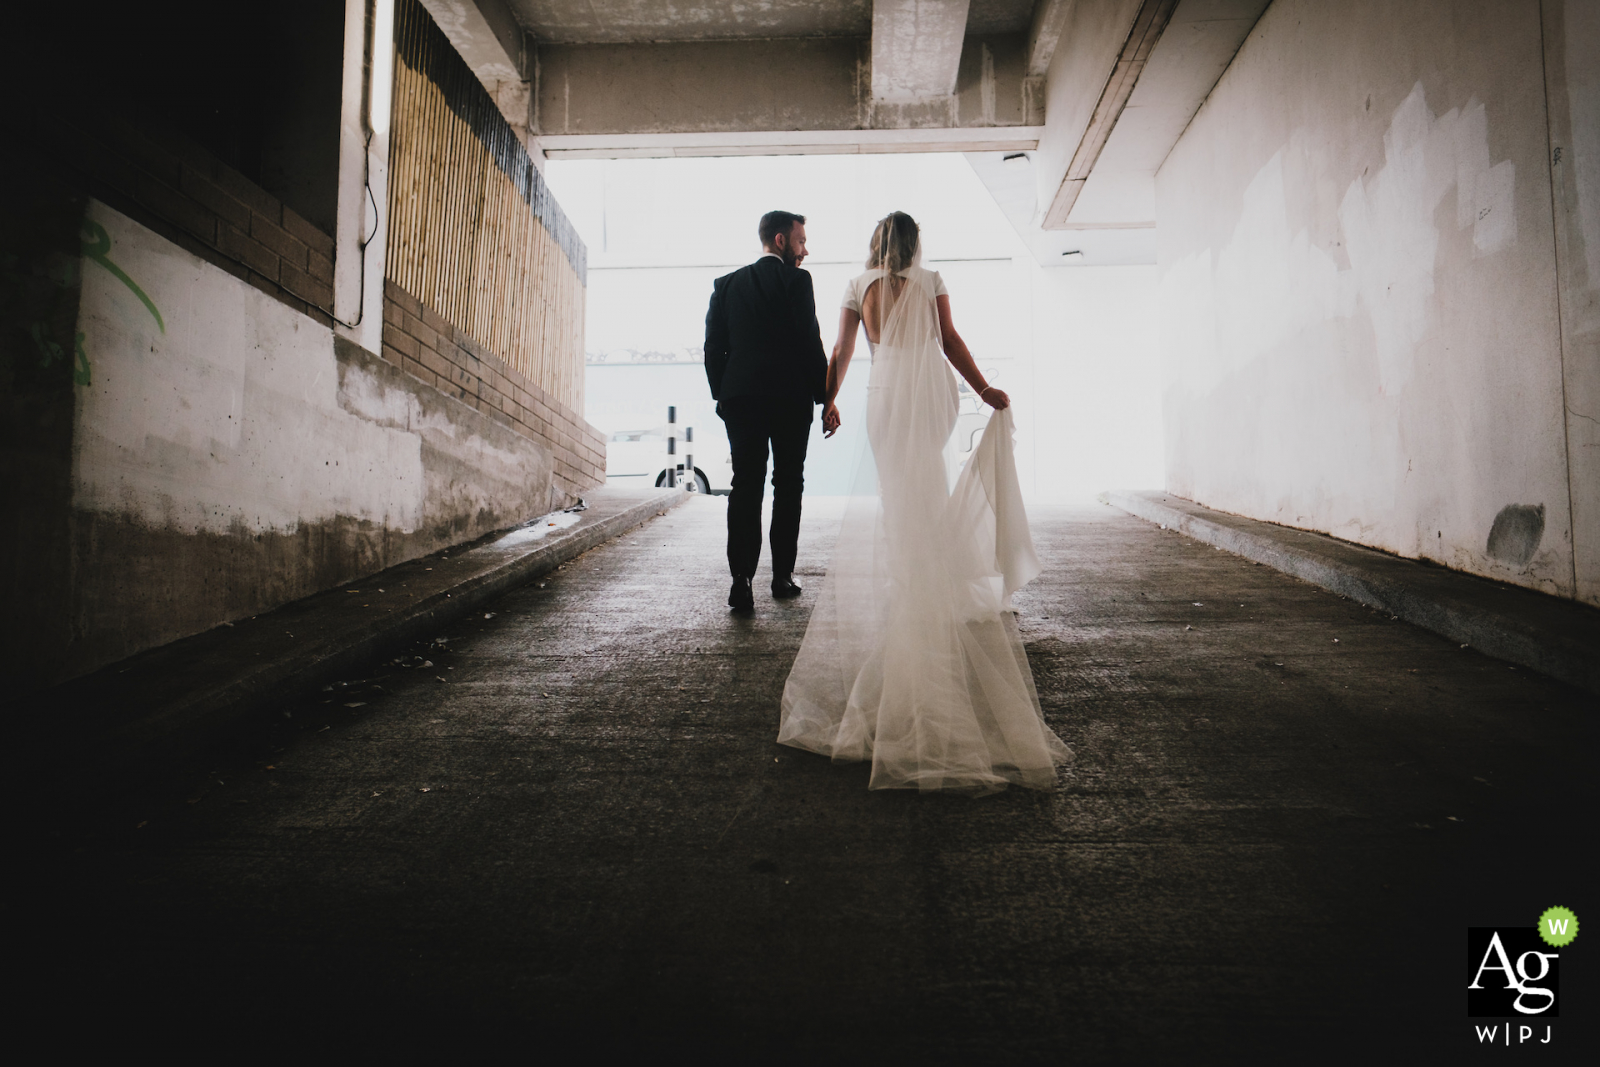 Wedding Photography at The Merchant Hotel, Belfast, Northern Ireland. | The bride and groom pictured emerging from an industrial-looking area in the city centre.